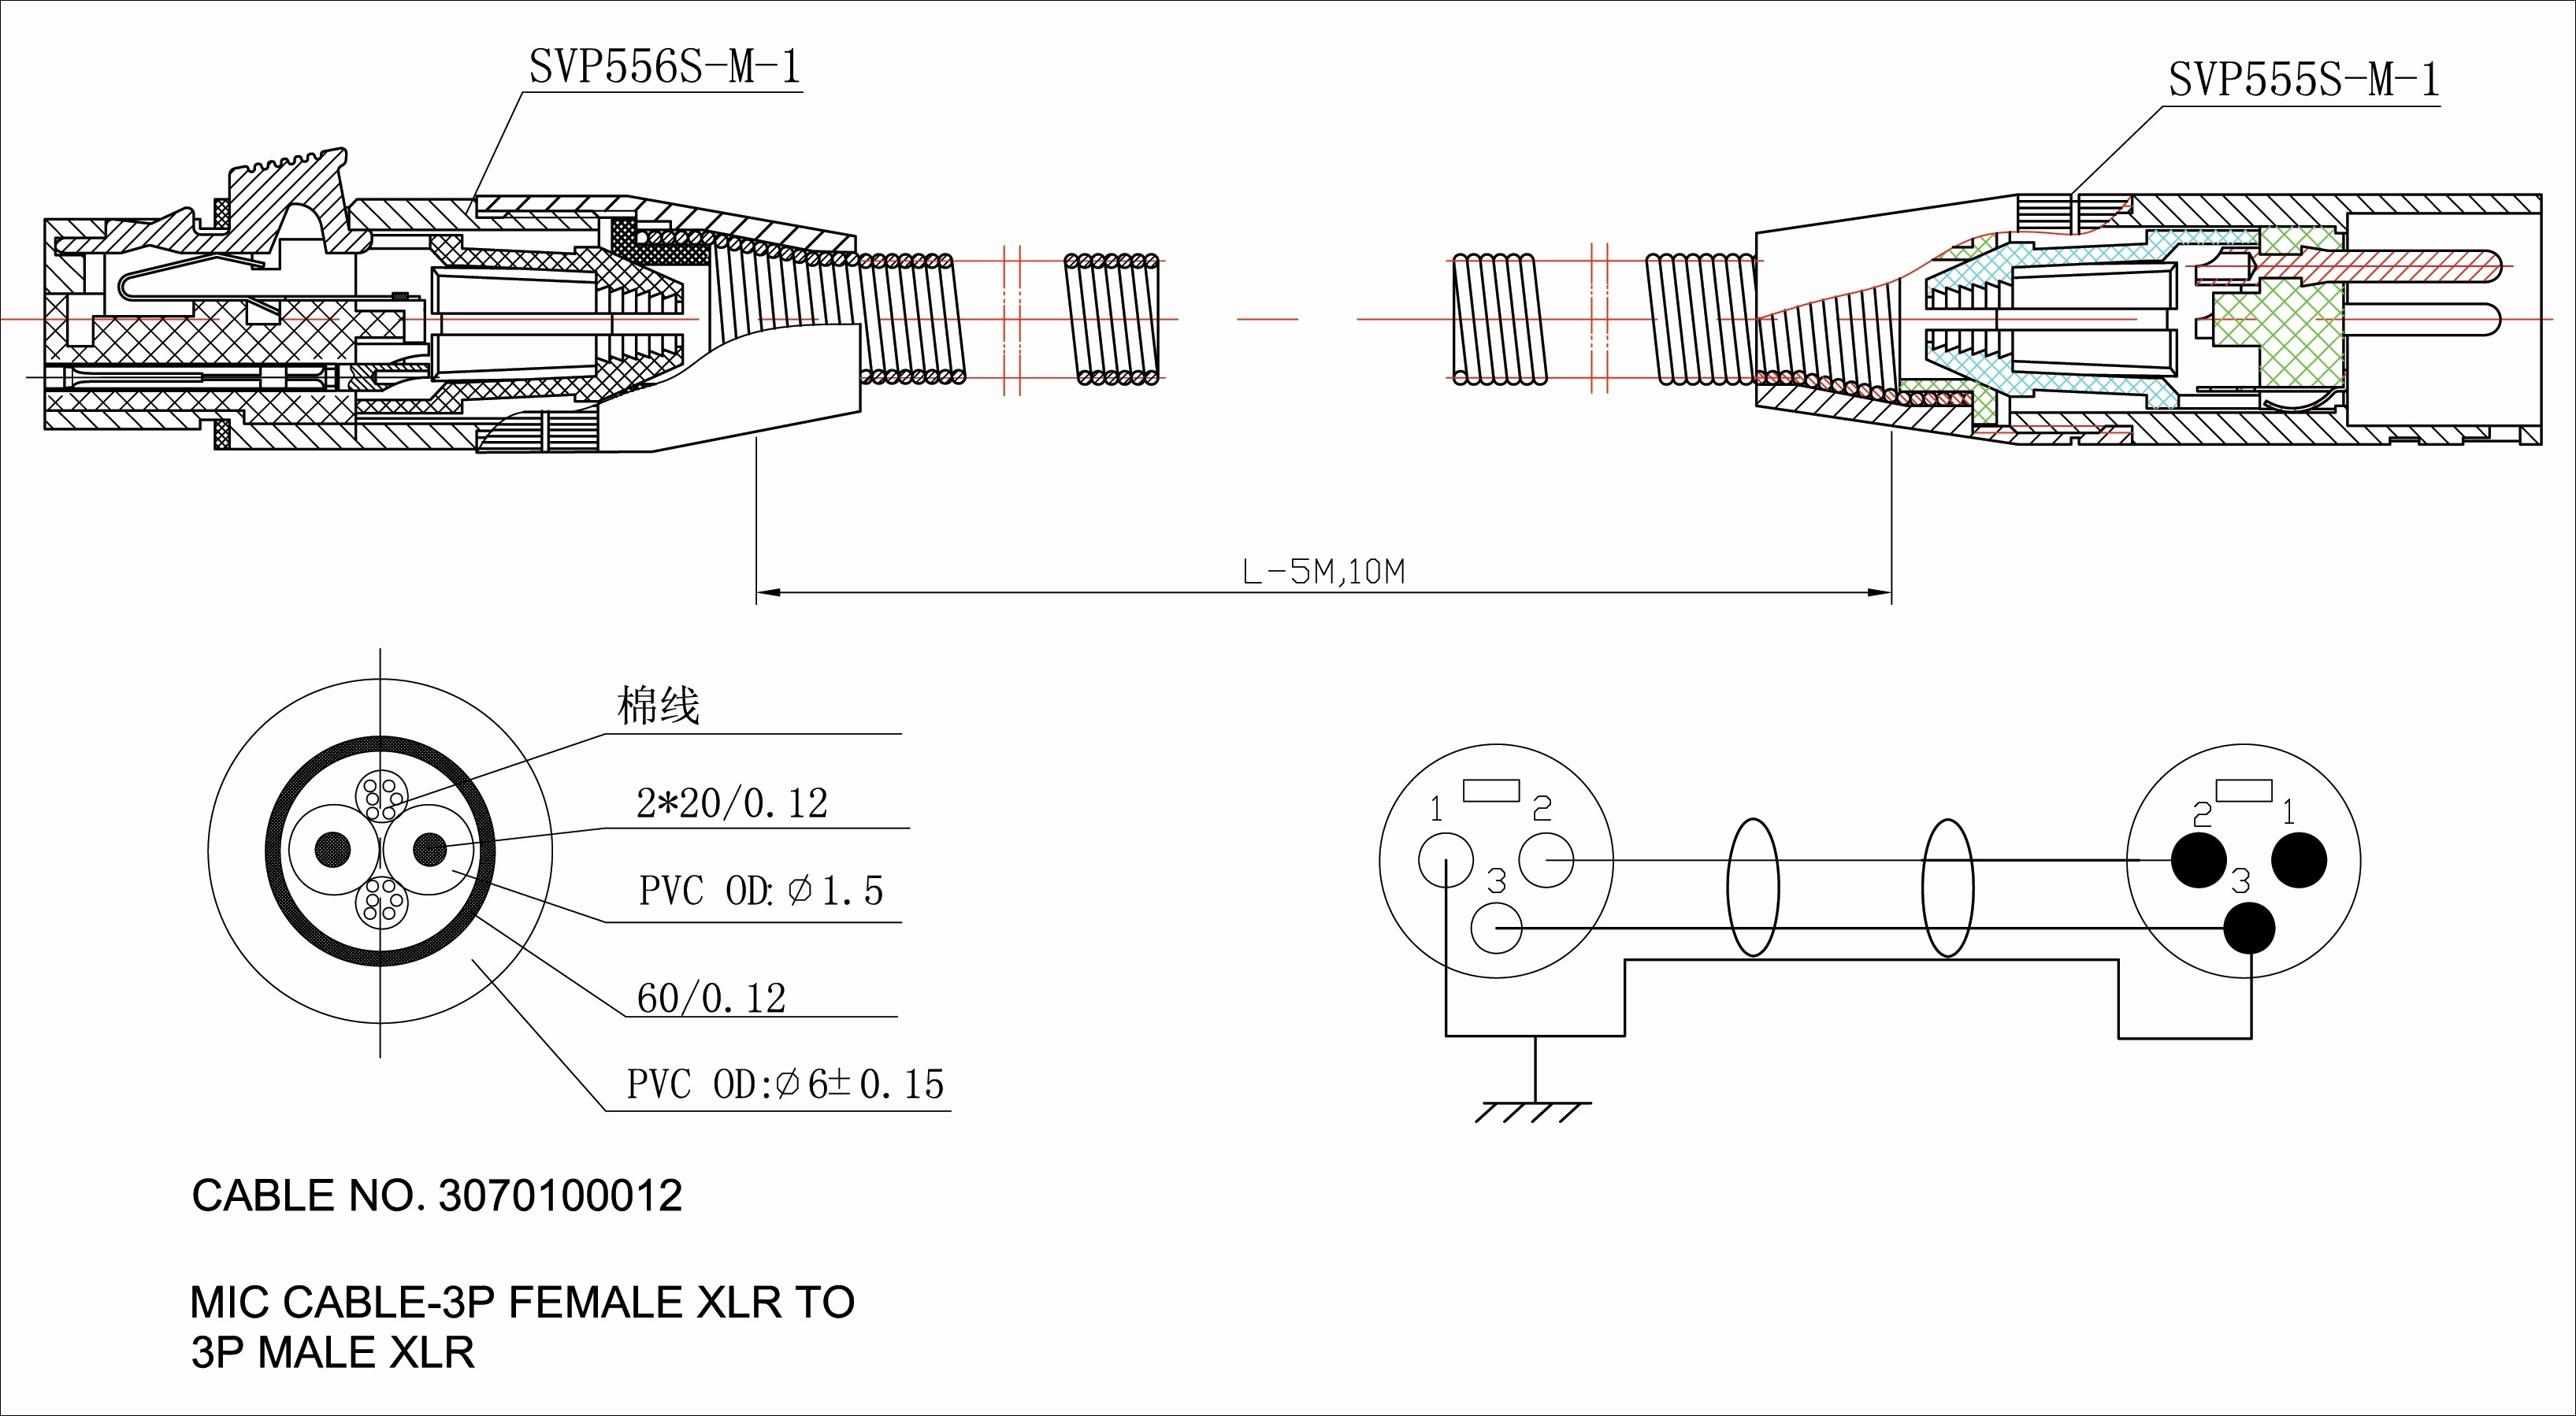 Led Tail Light Wiring Diagram Nissan Truck Tail Light Wiring Worksheet and Wiring Diagram • Of Led Tail Light Wiring Diagram